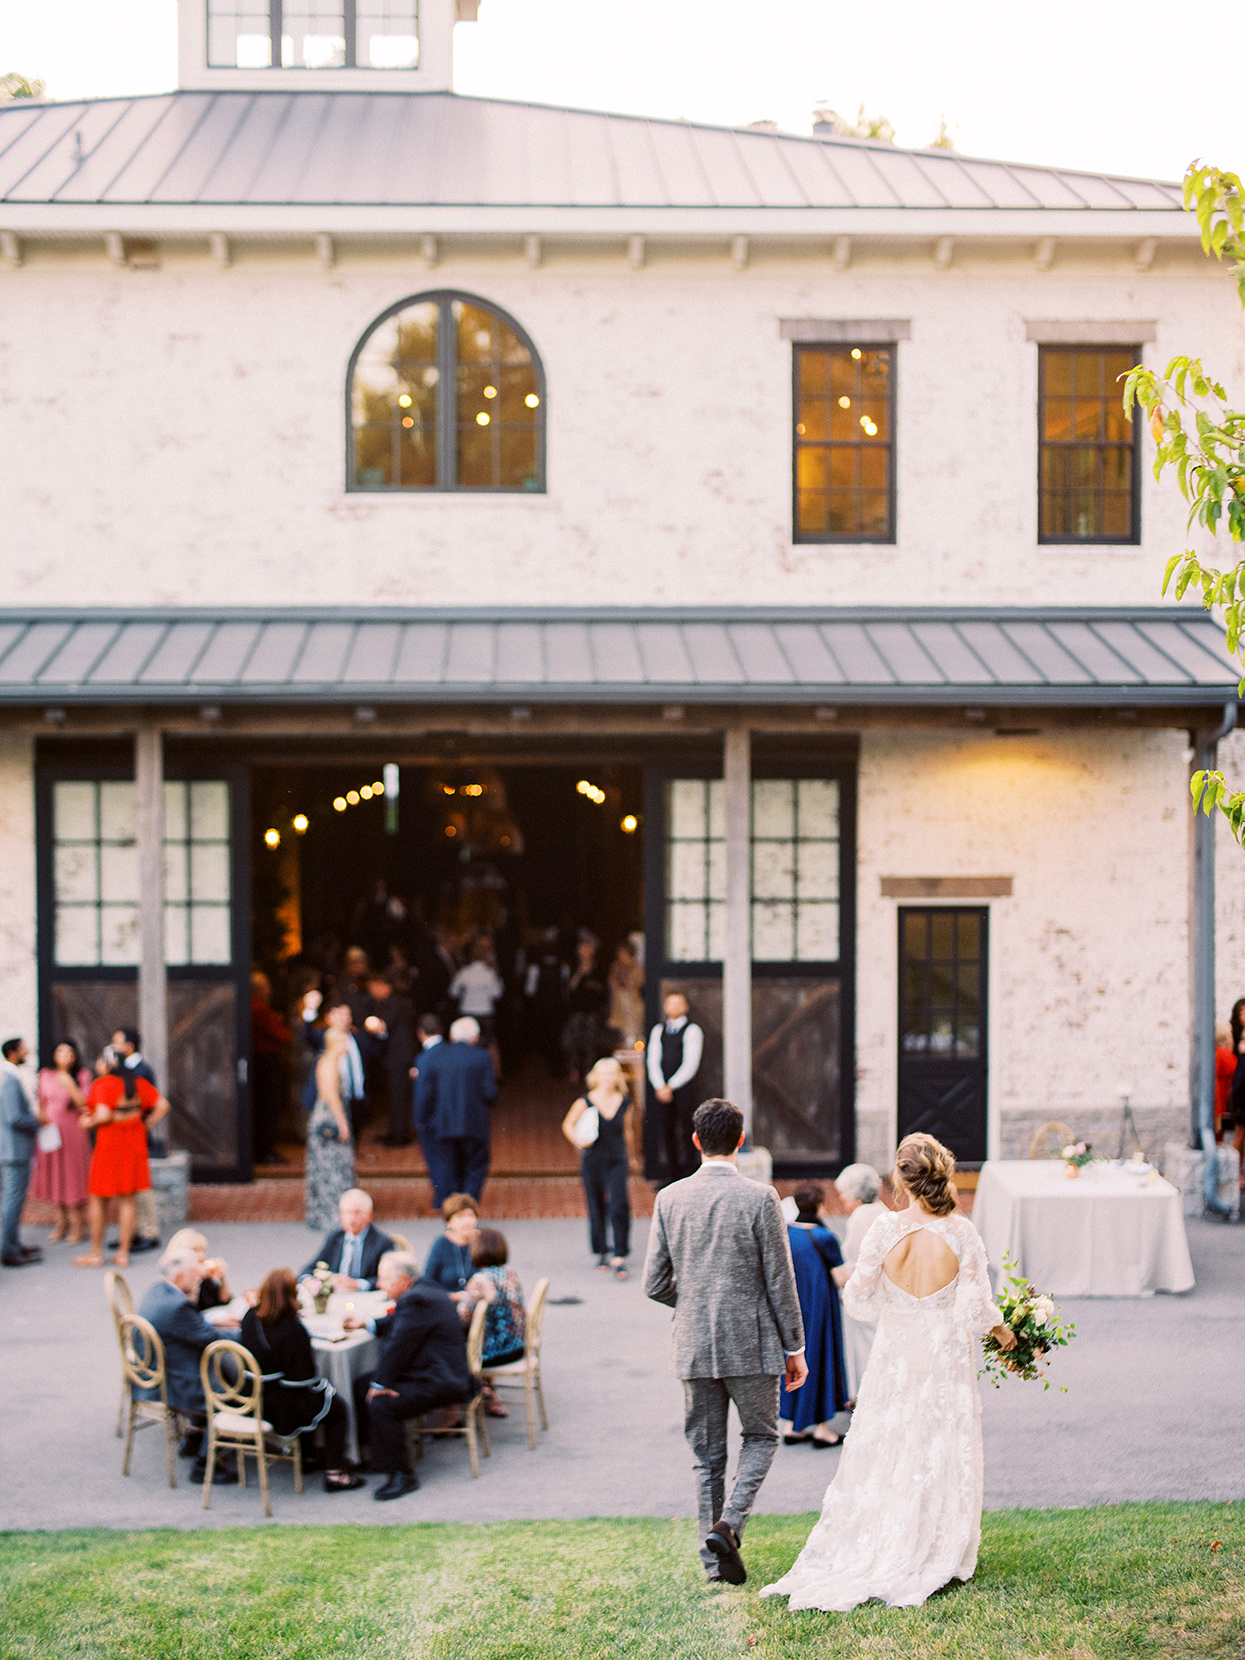 Claire and Dan entering indoor-outdoor cocktail hour